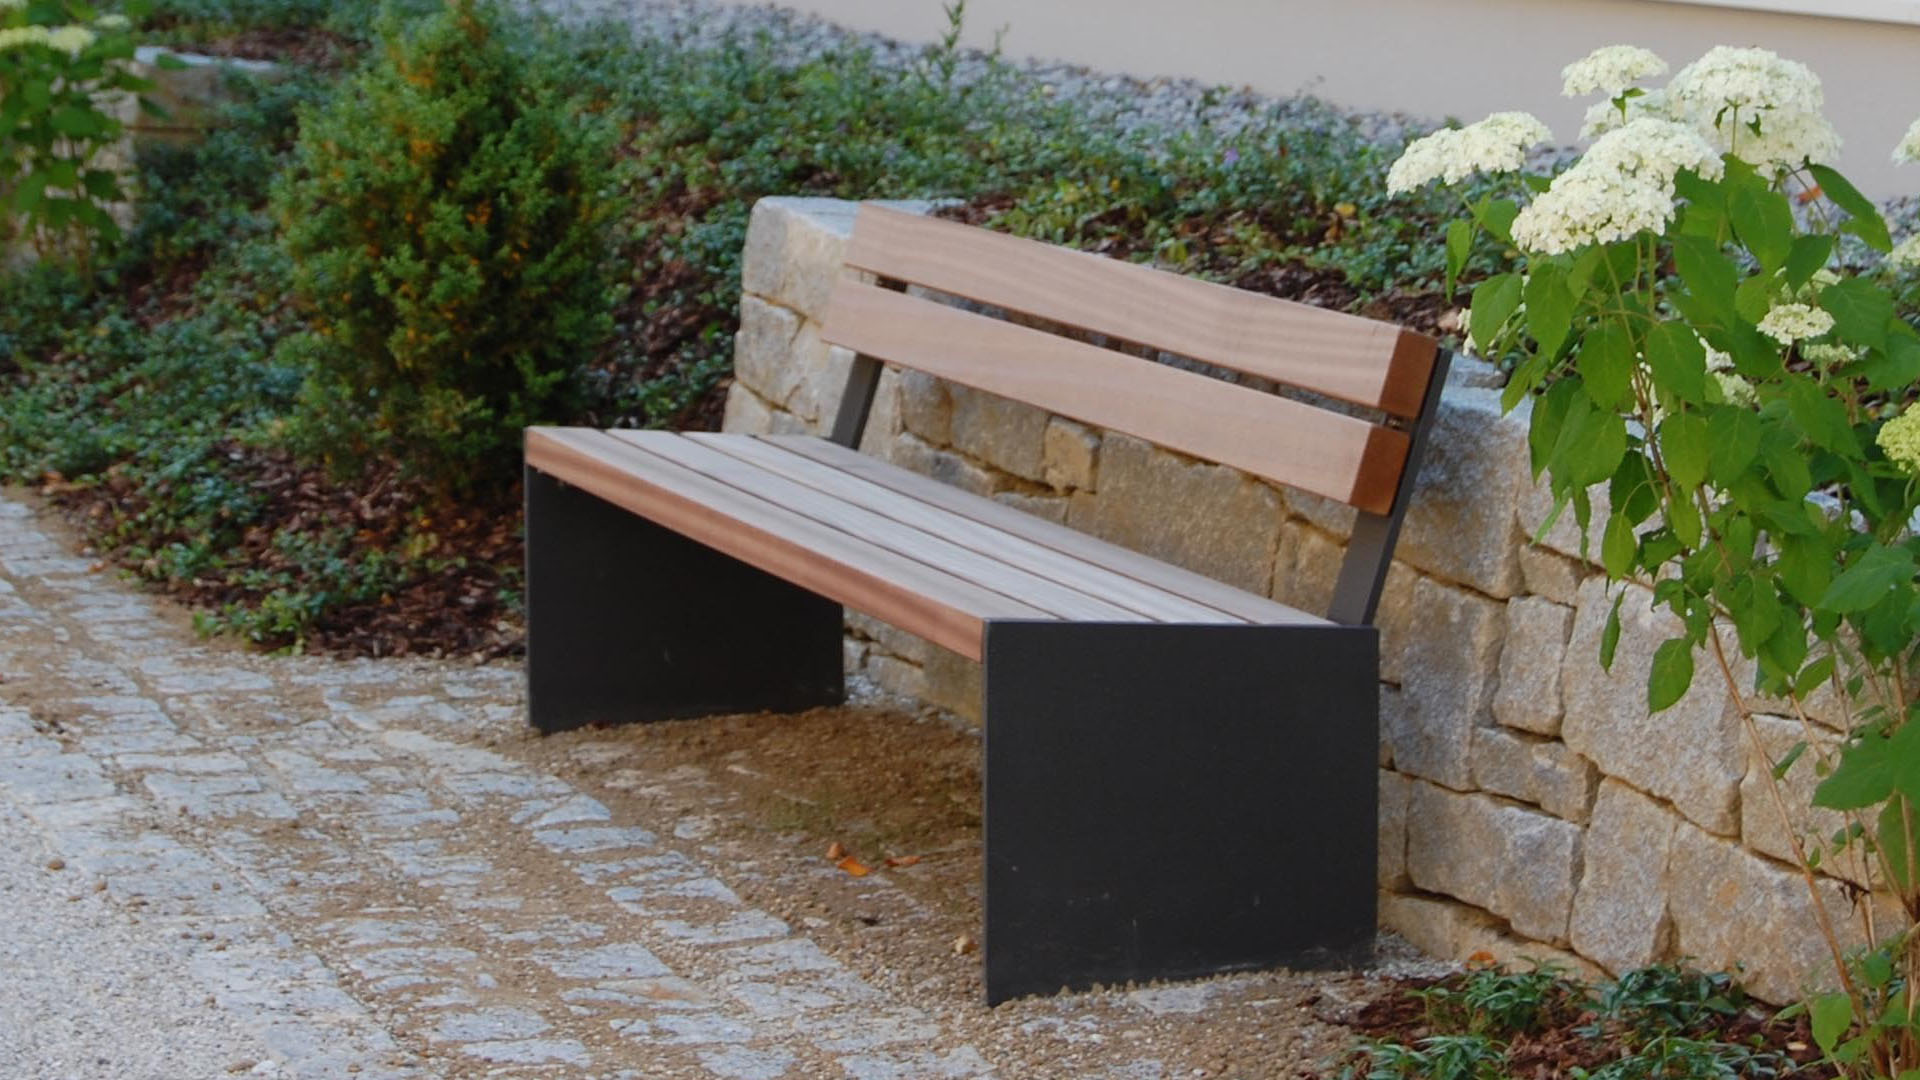 Binga Bench Seating Location image 1920x1080px